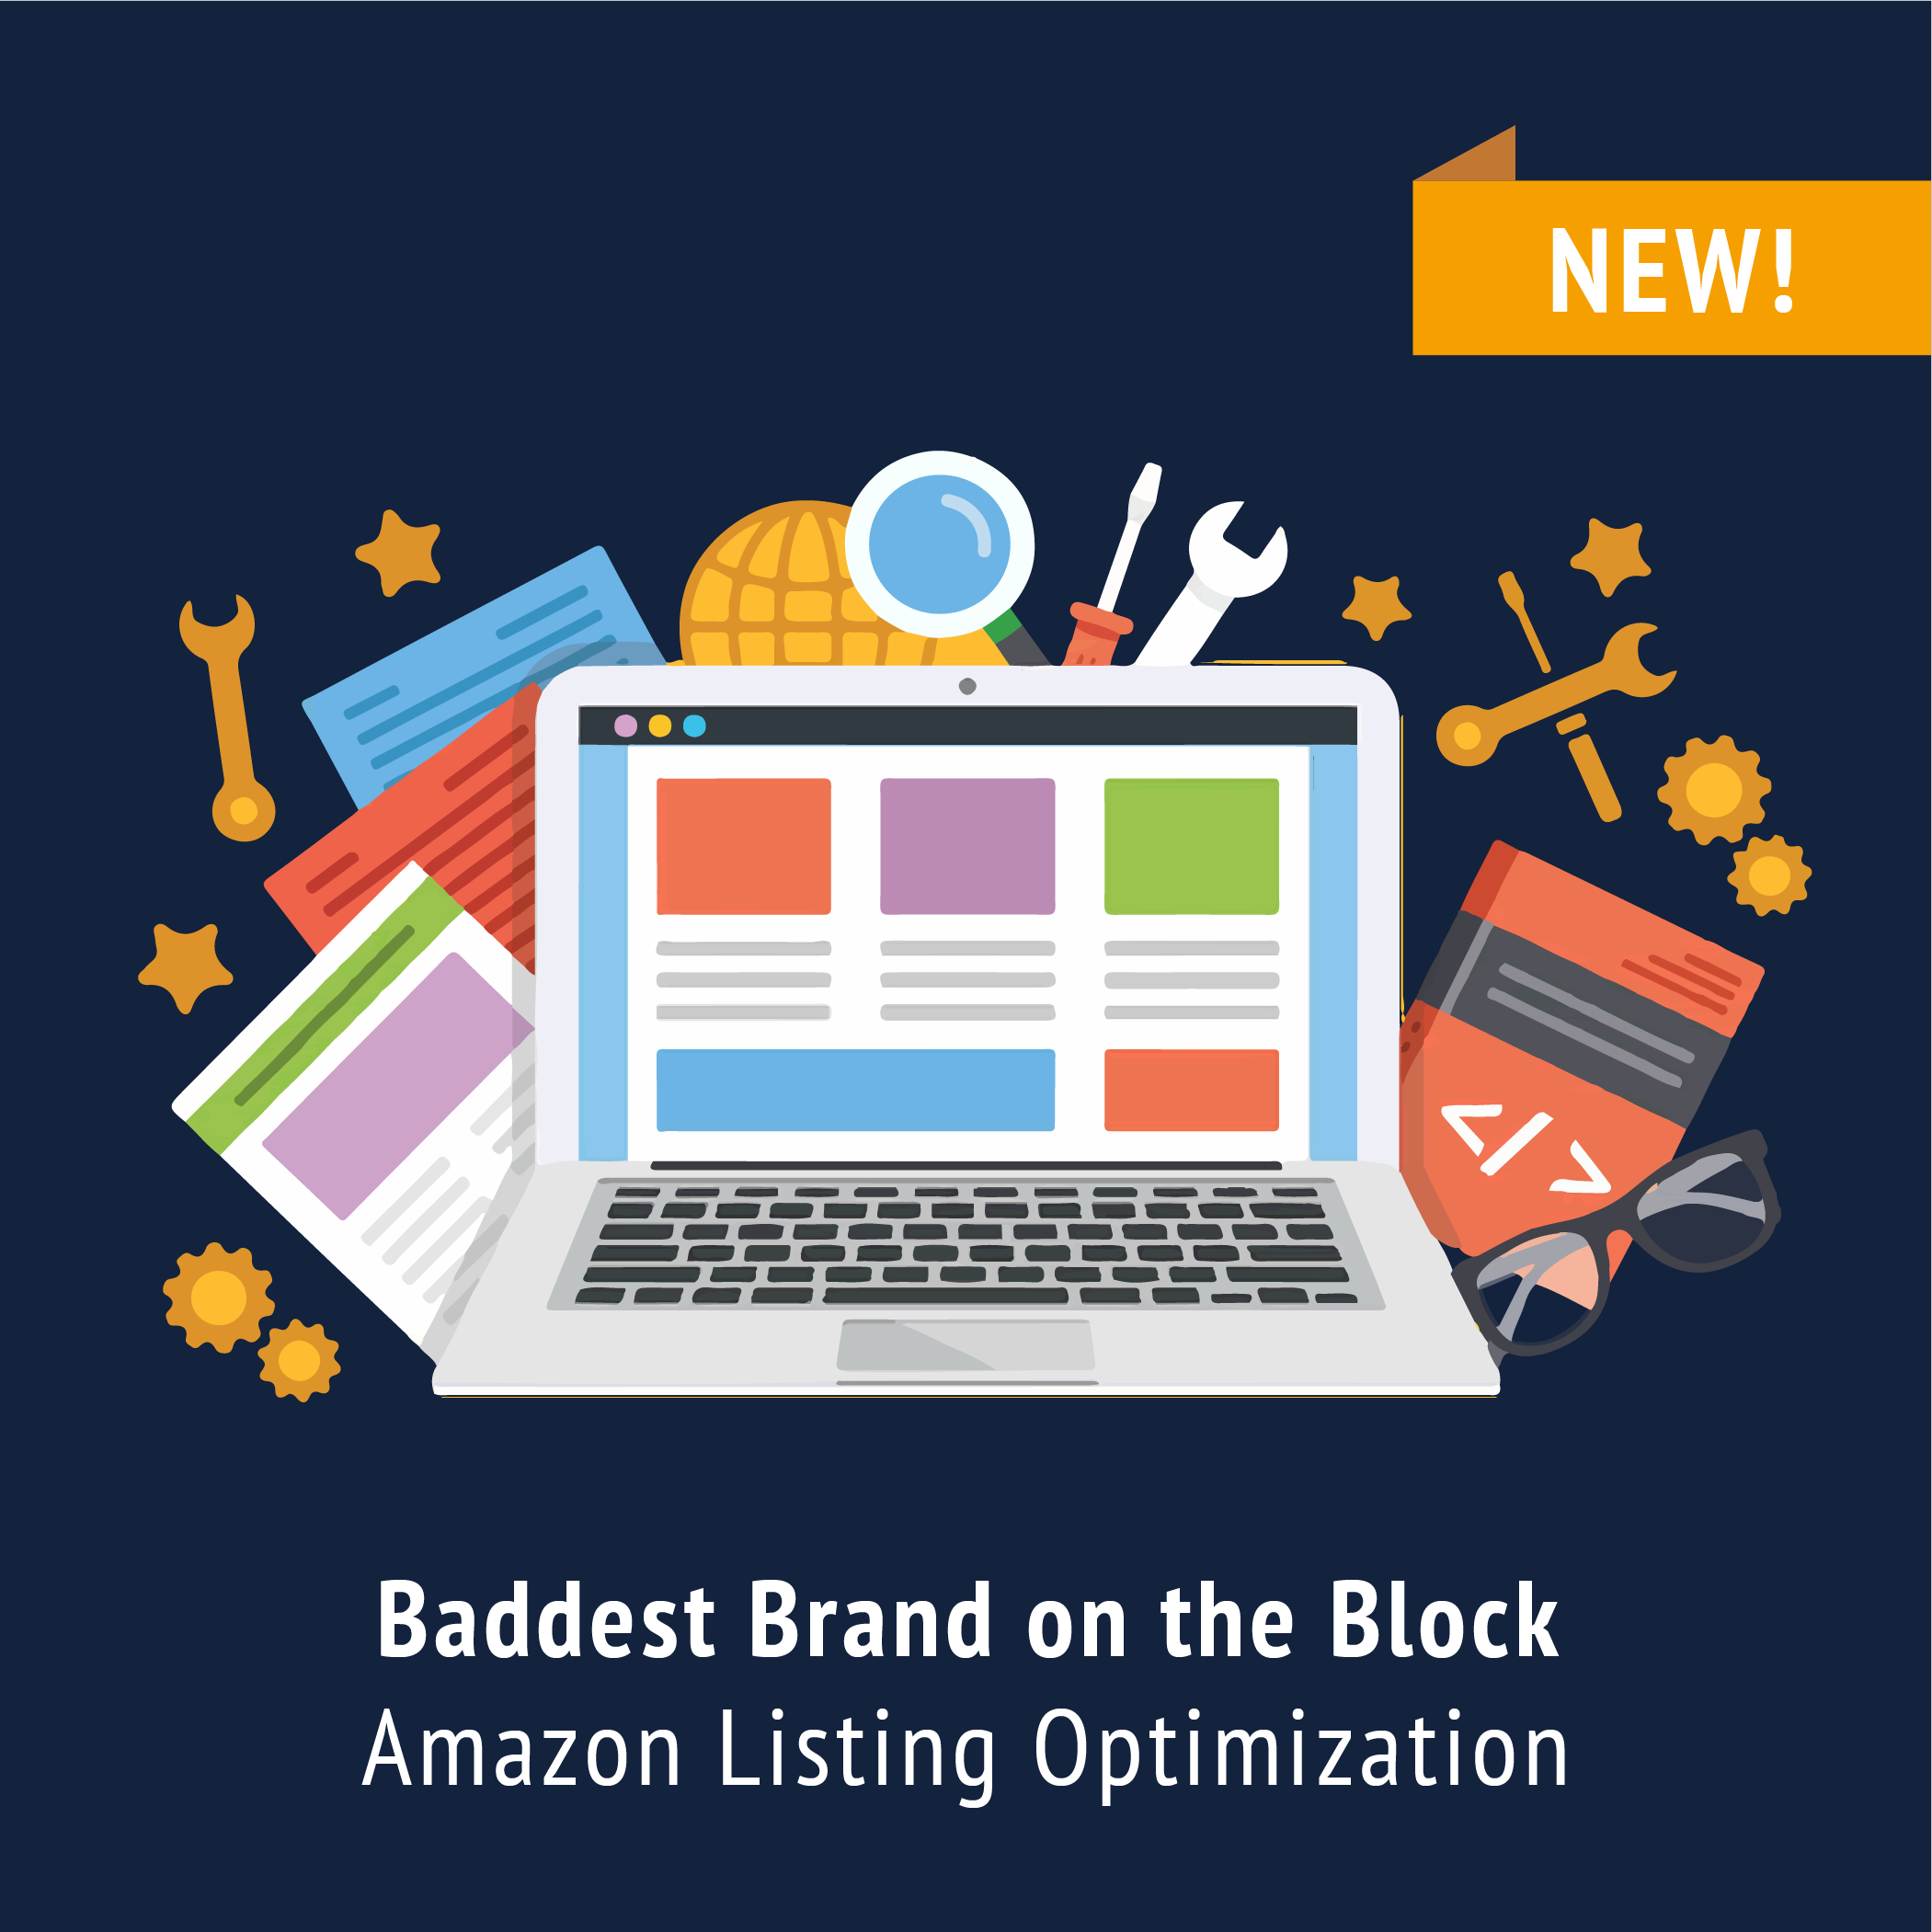 Emmazon Bundle Amazon Listing Optimization Branding from Marketing by Emma's Emmazon